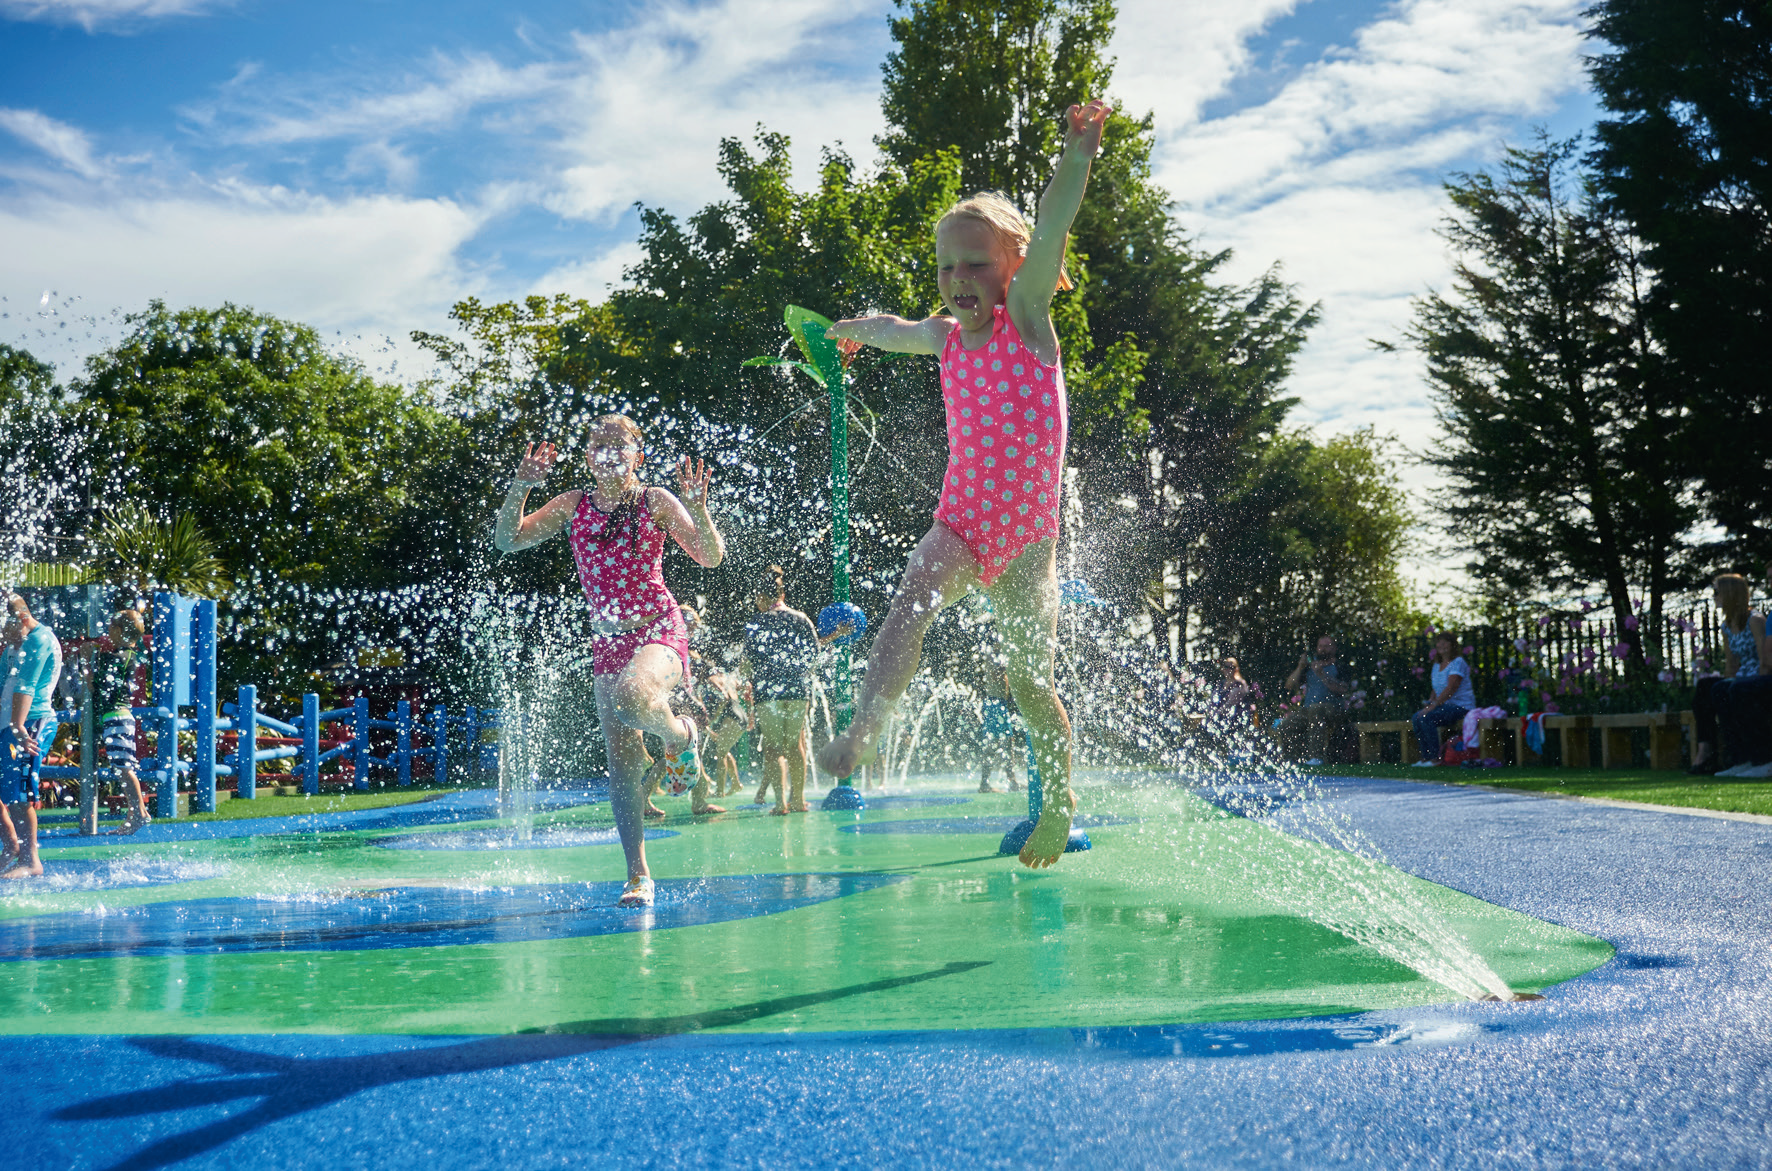 Zero-depth splash pads can offer holiday parks the 'wow' factor and can provide the ideal tool for attracting and retaining guests. Pic: Ustigate Waterplay.